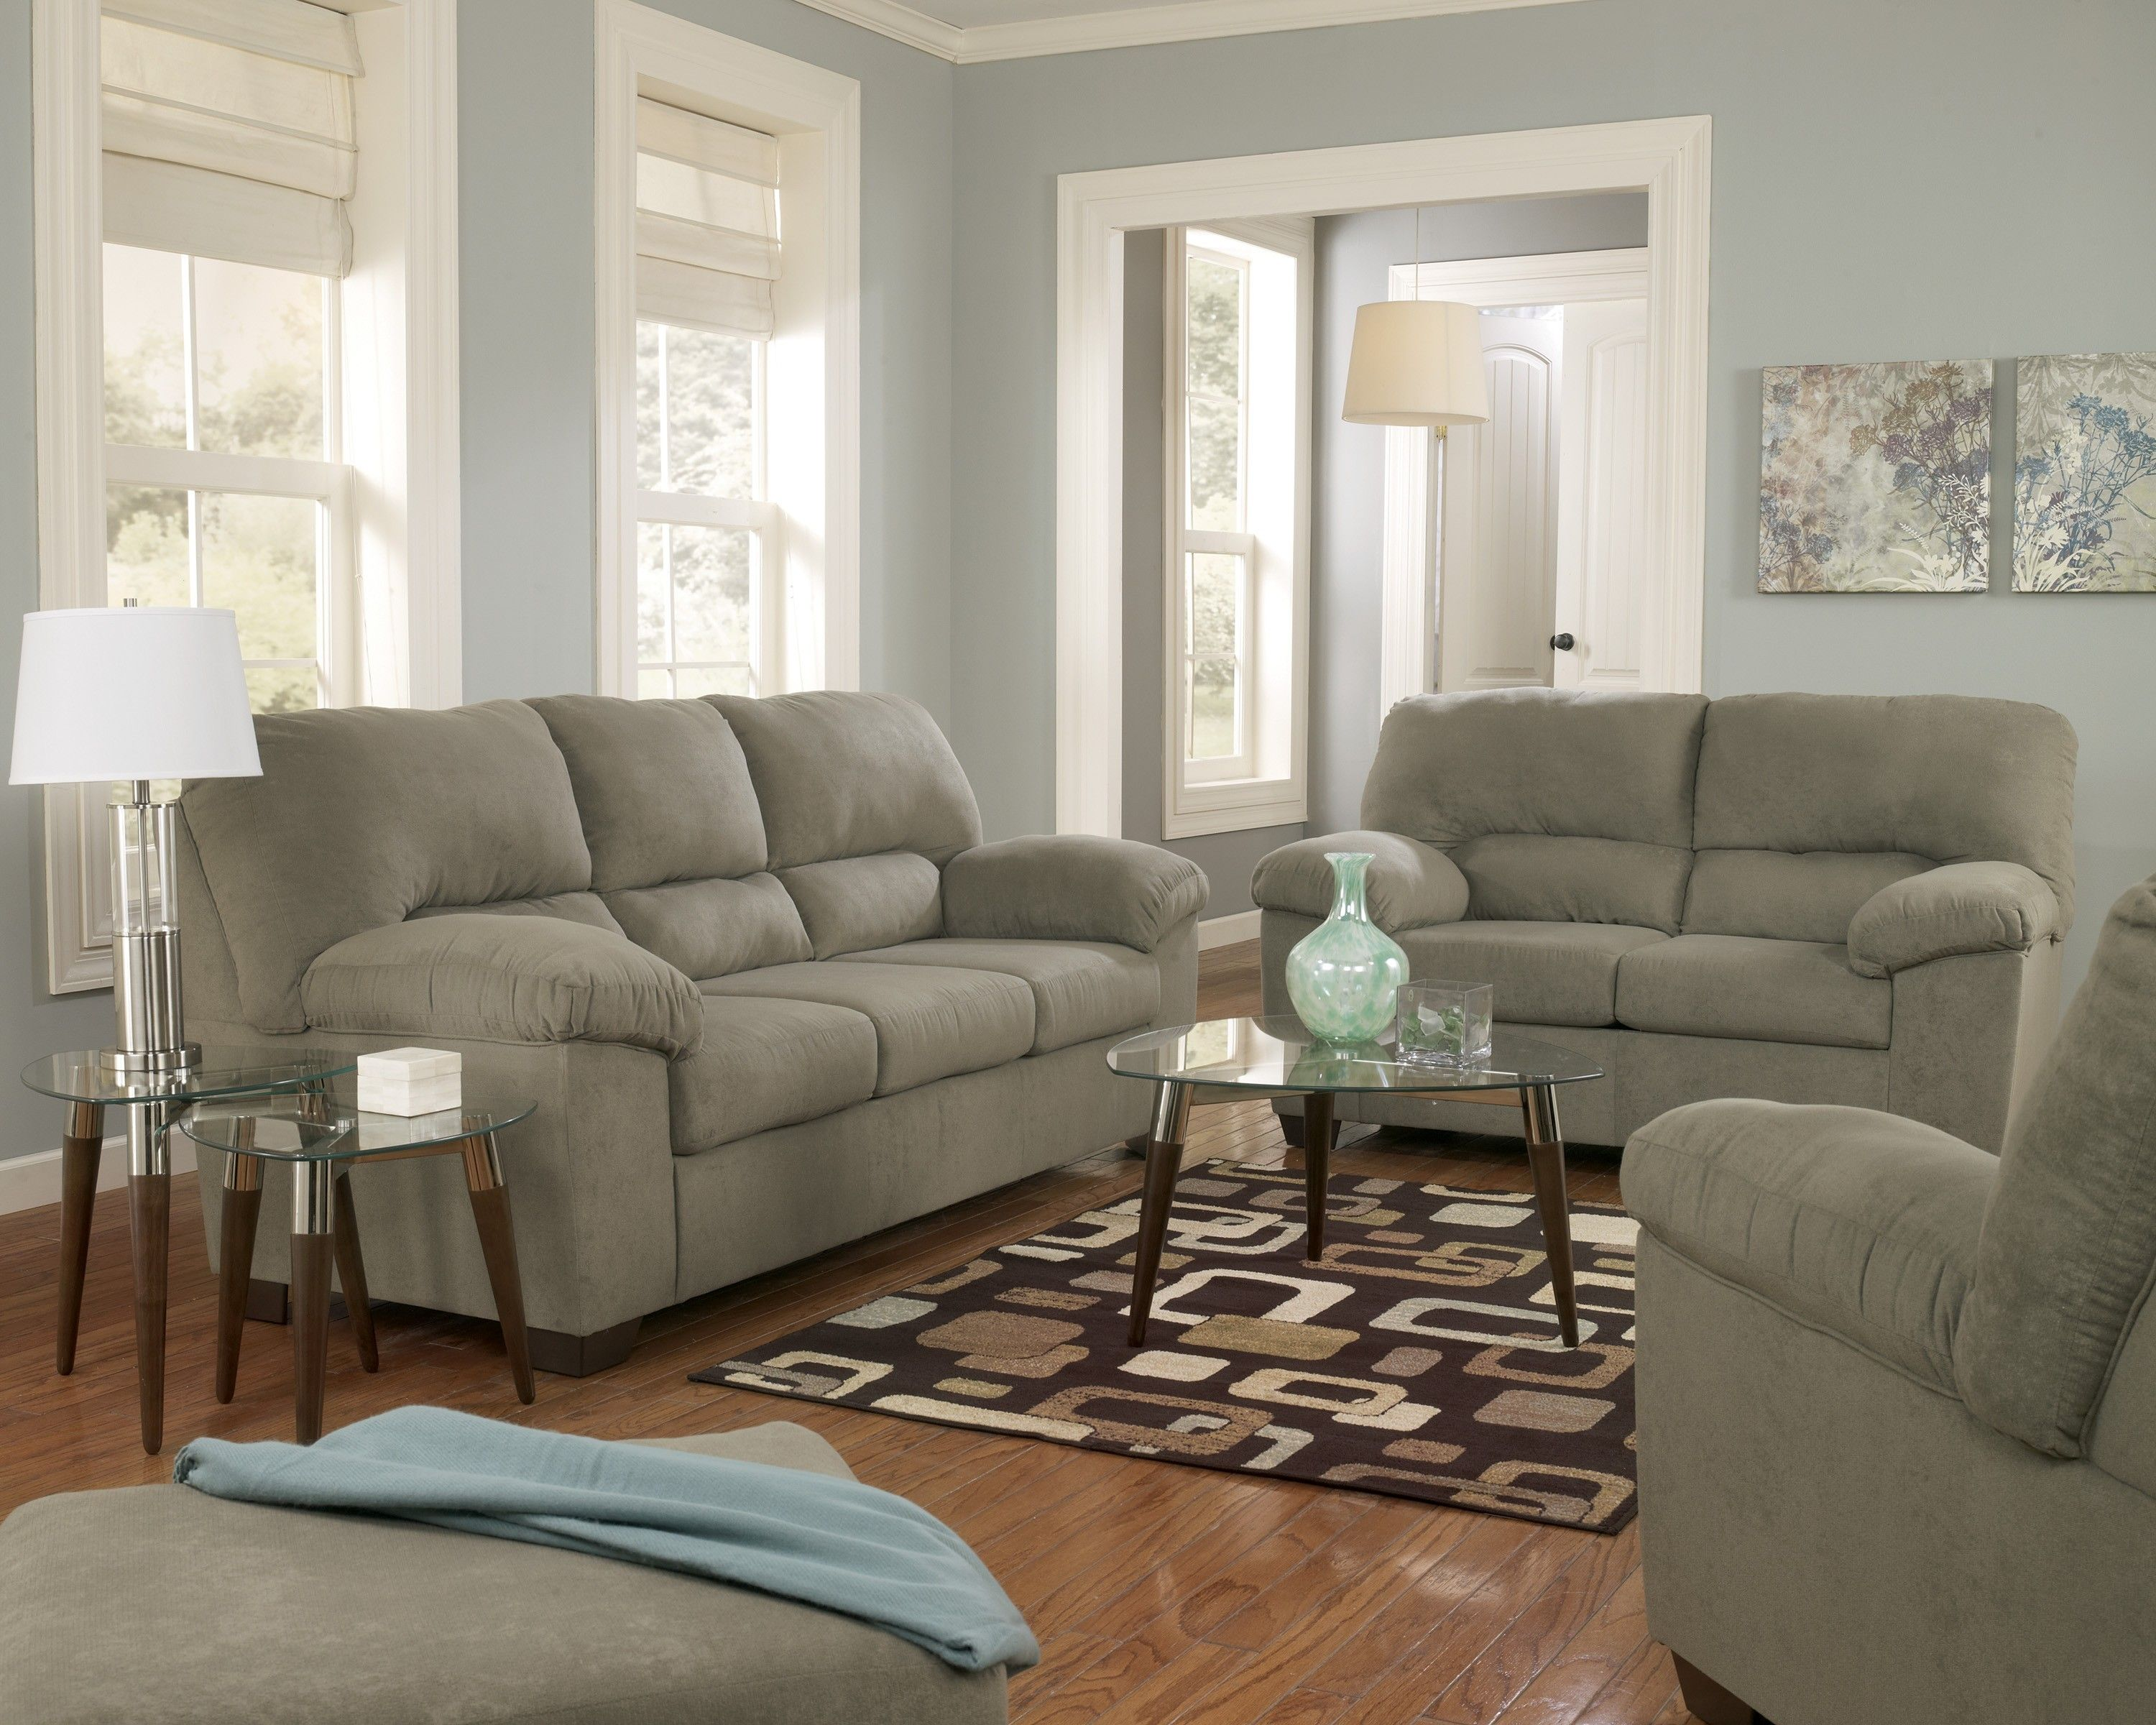 living room sofas modern home decorating couch sale - Home Decor For Sale